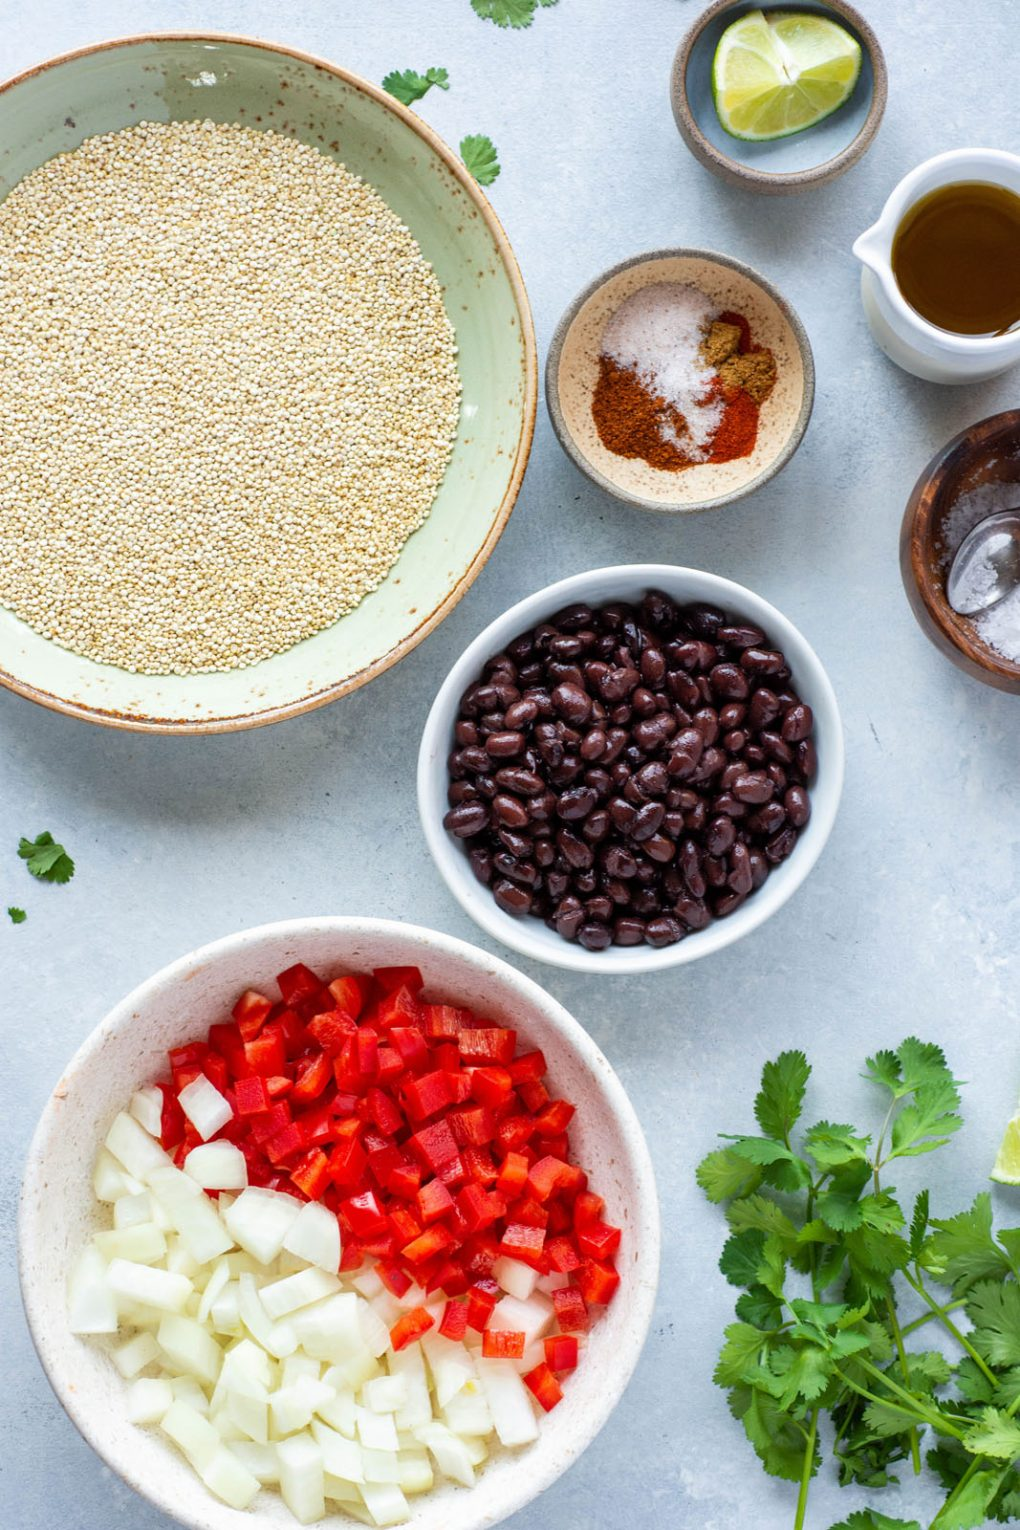 Overhead shot of various ingredients for southwest quinoa and black beans. Plate of white quinoa, a small bowl of spices, a bowl of black beans, a bowl of diced onion and red pepper, and fresh cilantro on a light colored background.